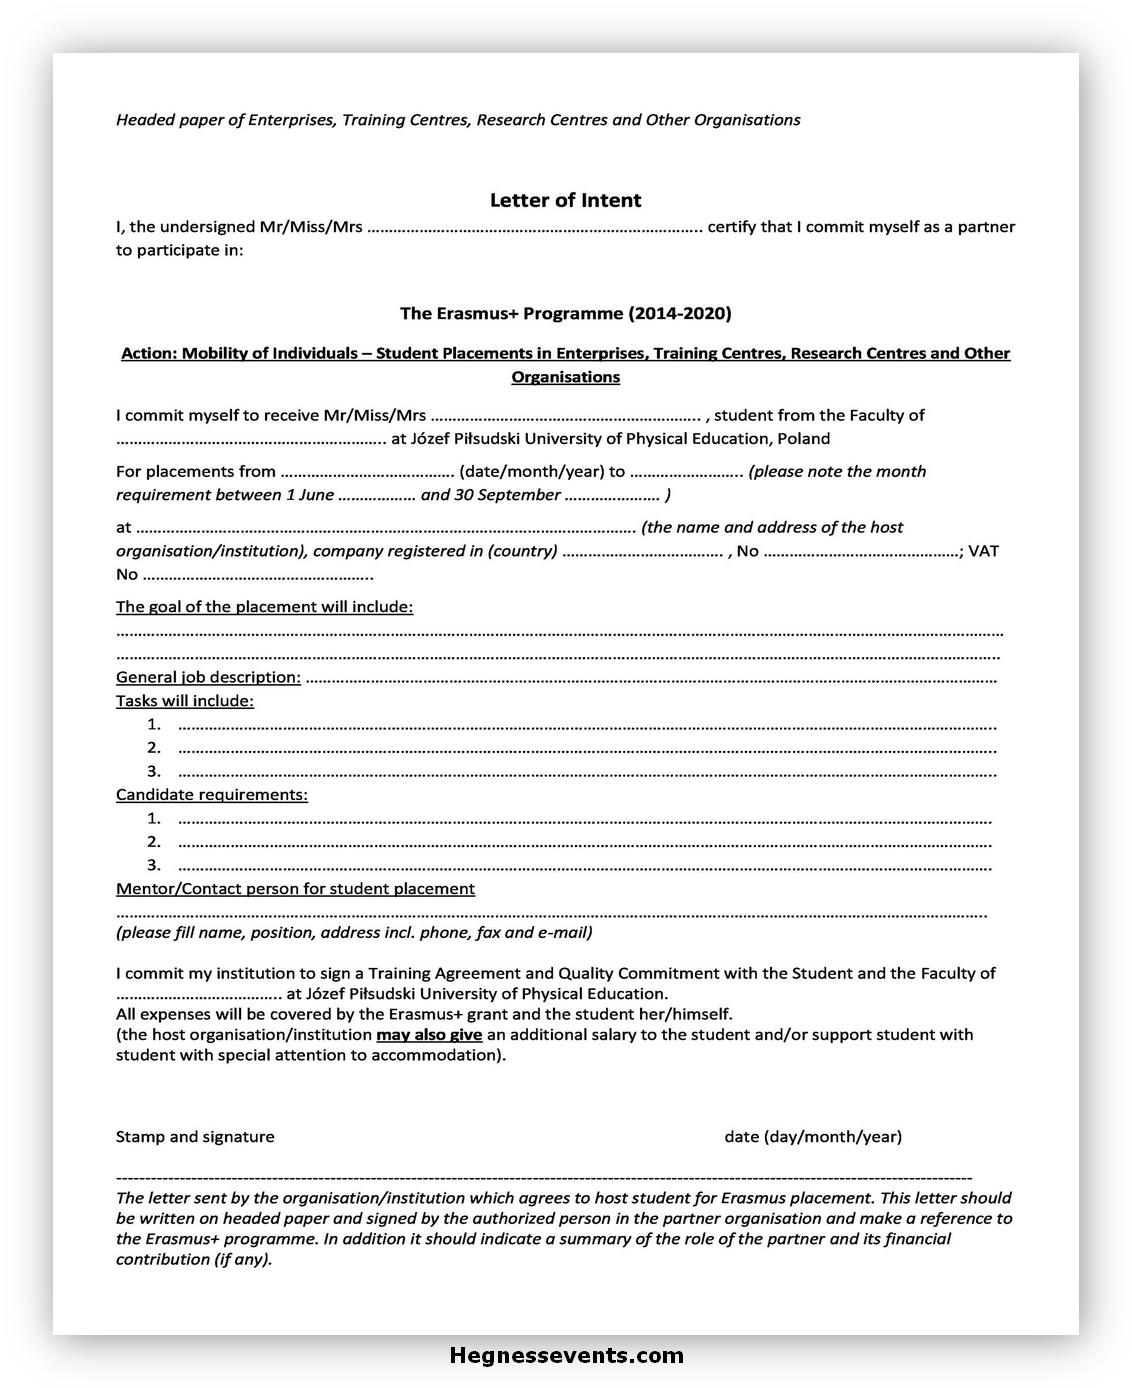 Sample Letter of Intent 01